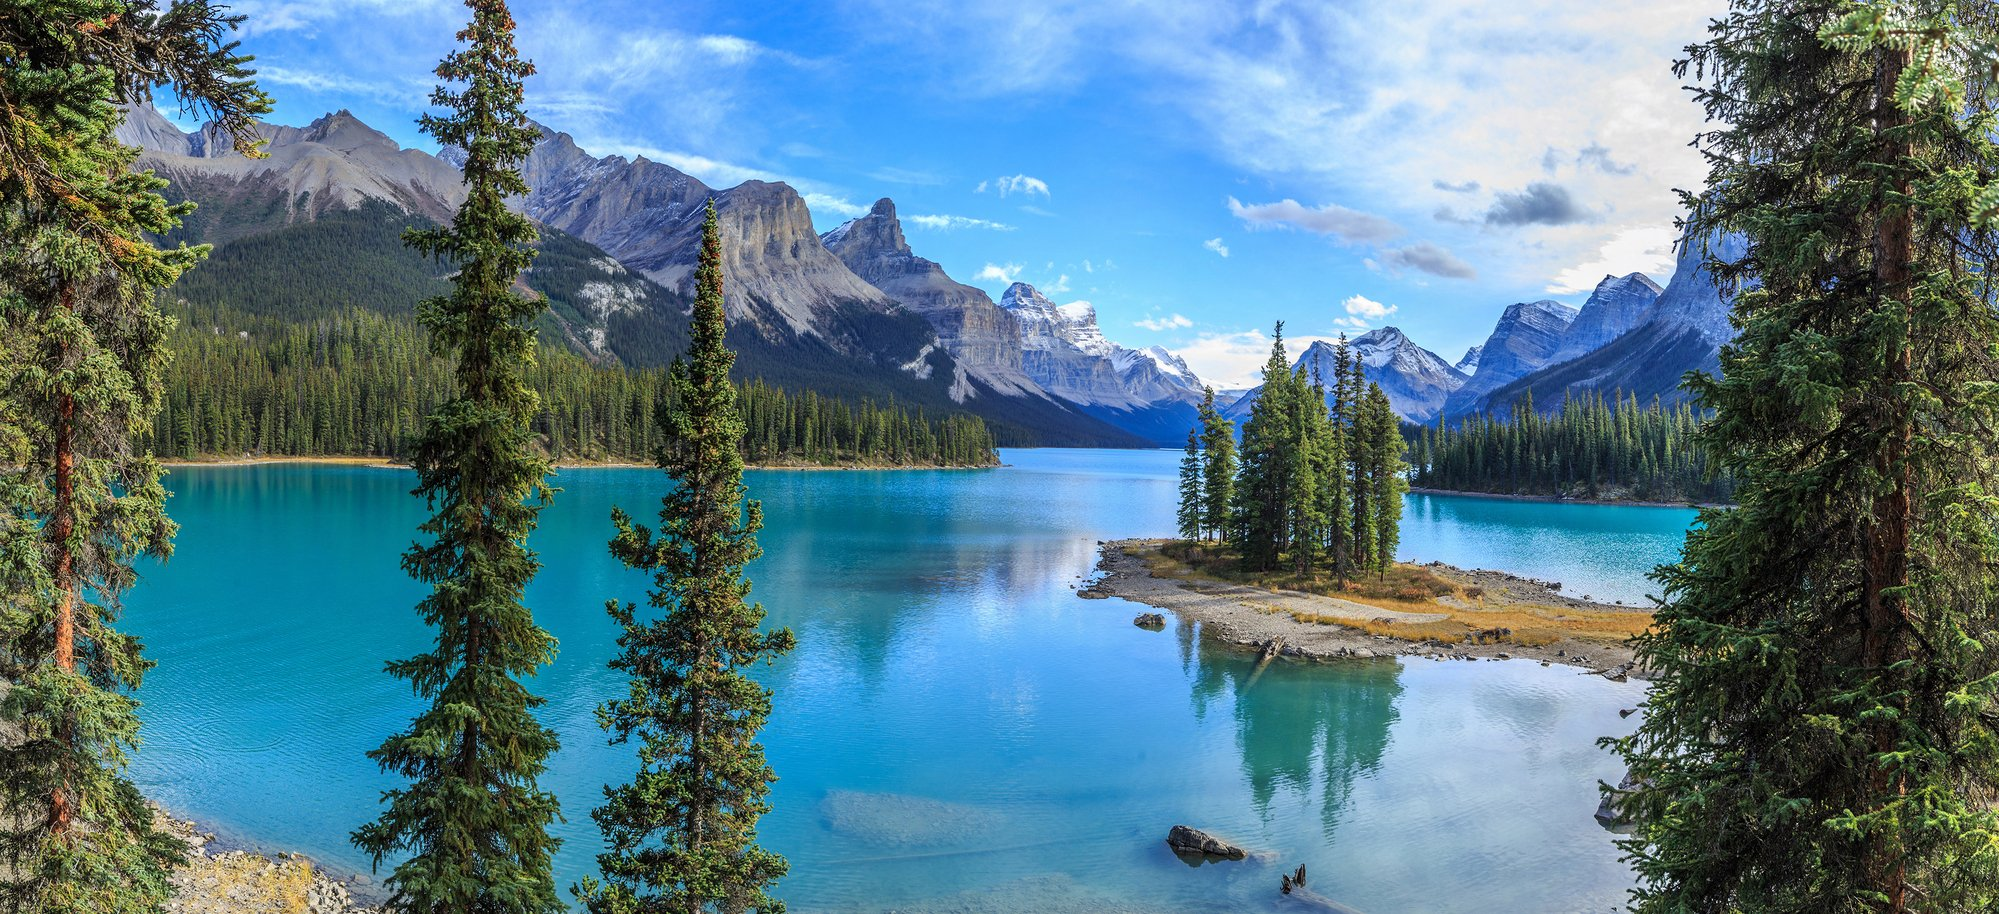 15 Jaw-Dropping Hikes in Jasper National Park for All Levels